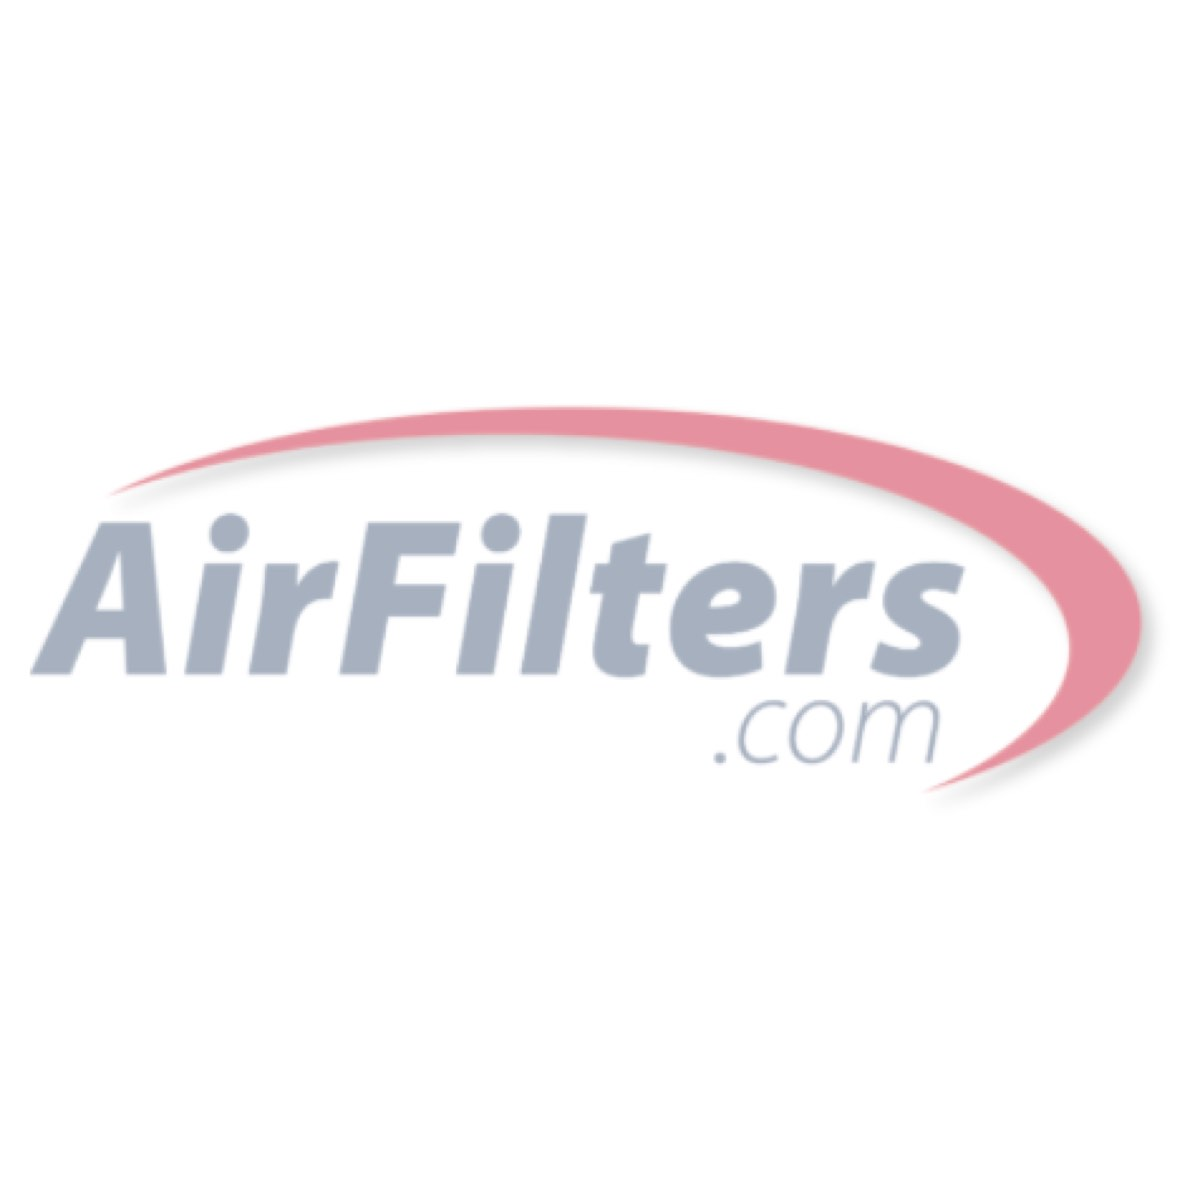 20x20x5 (20.75 x 20.25 x 5.25) Carrier® Filters by Accumulair®